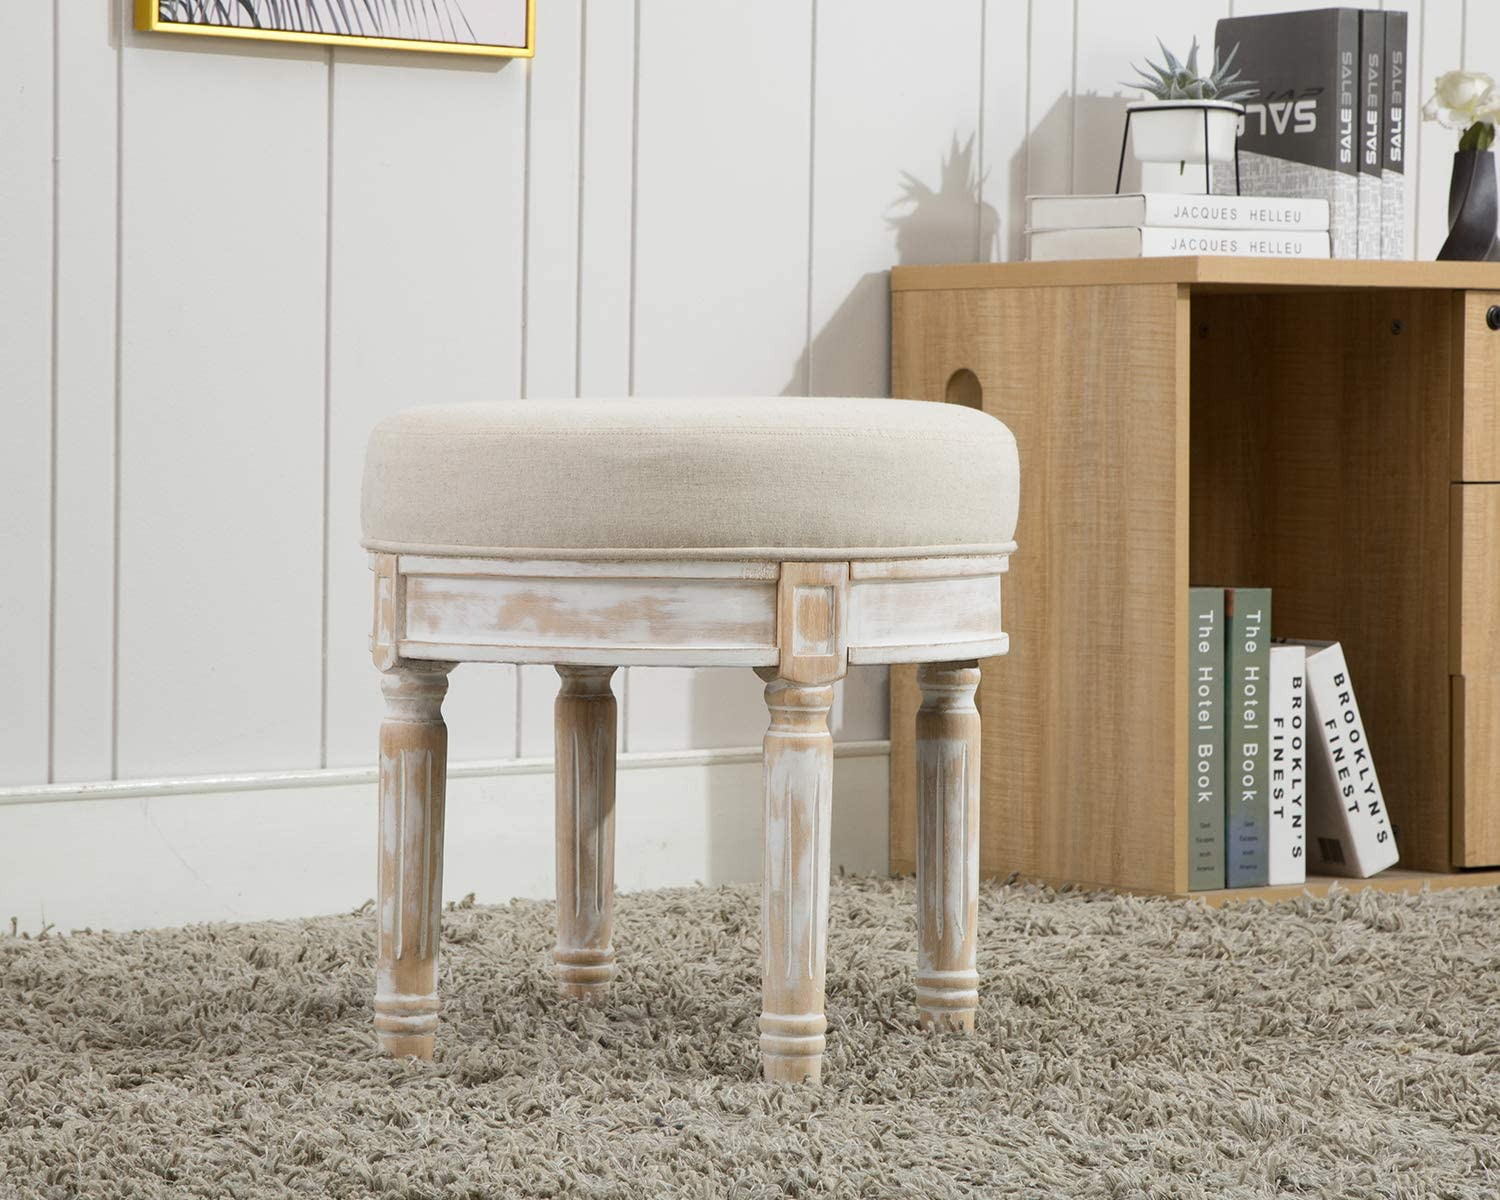 Kmax Small Round Rustic Entryway Ottoman Stool, Upholstered Vanity Stool for Bedroom, 18